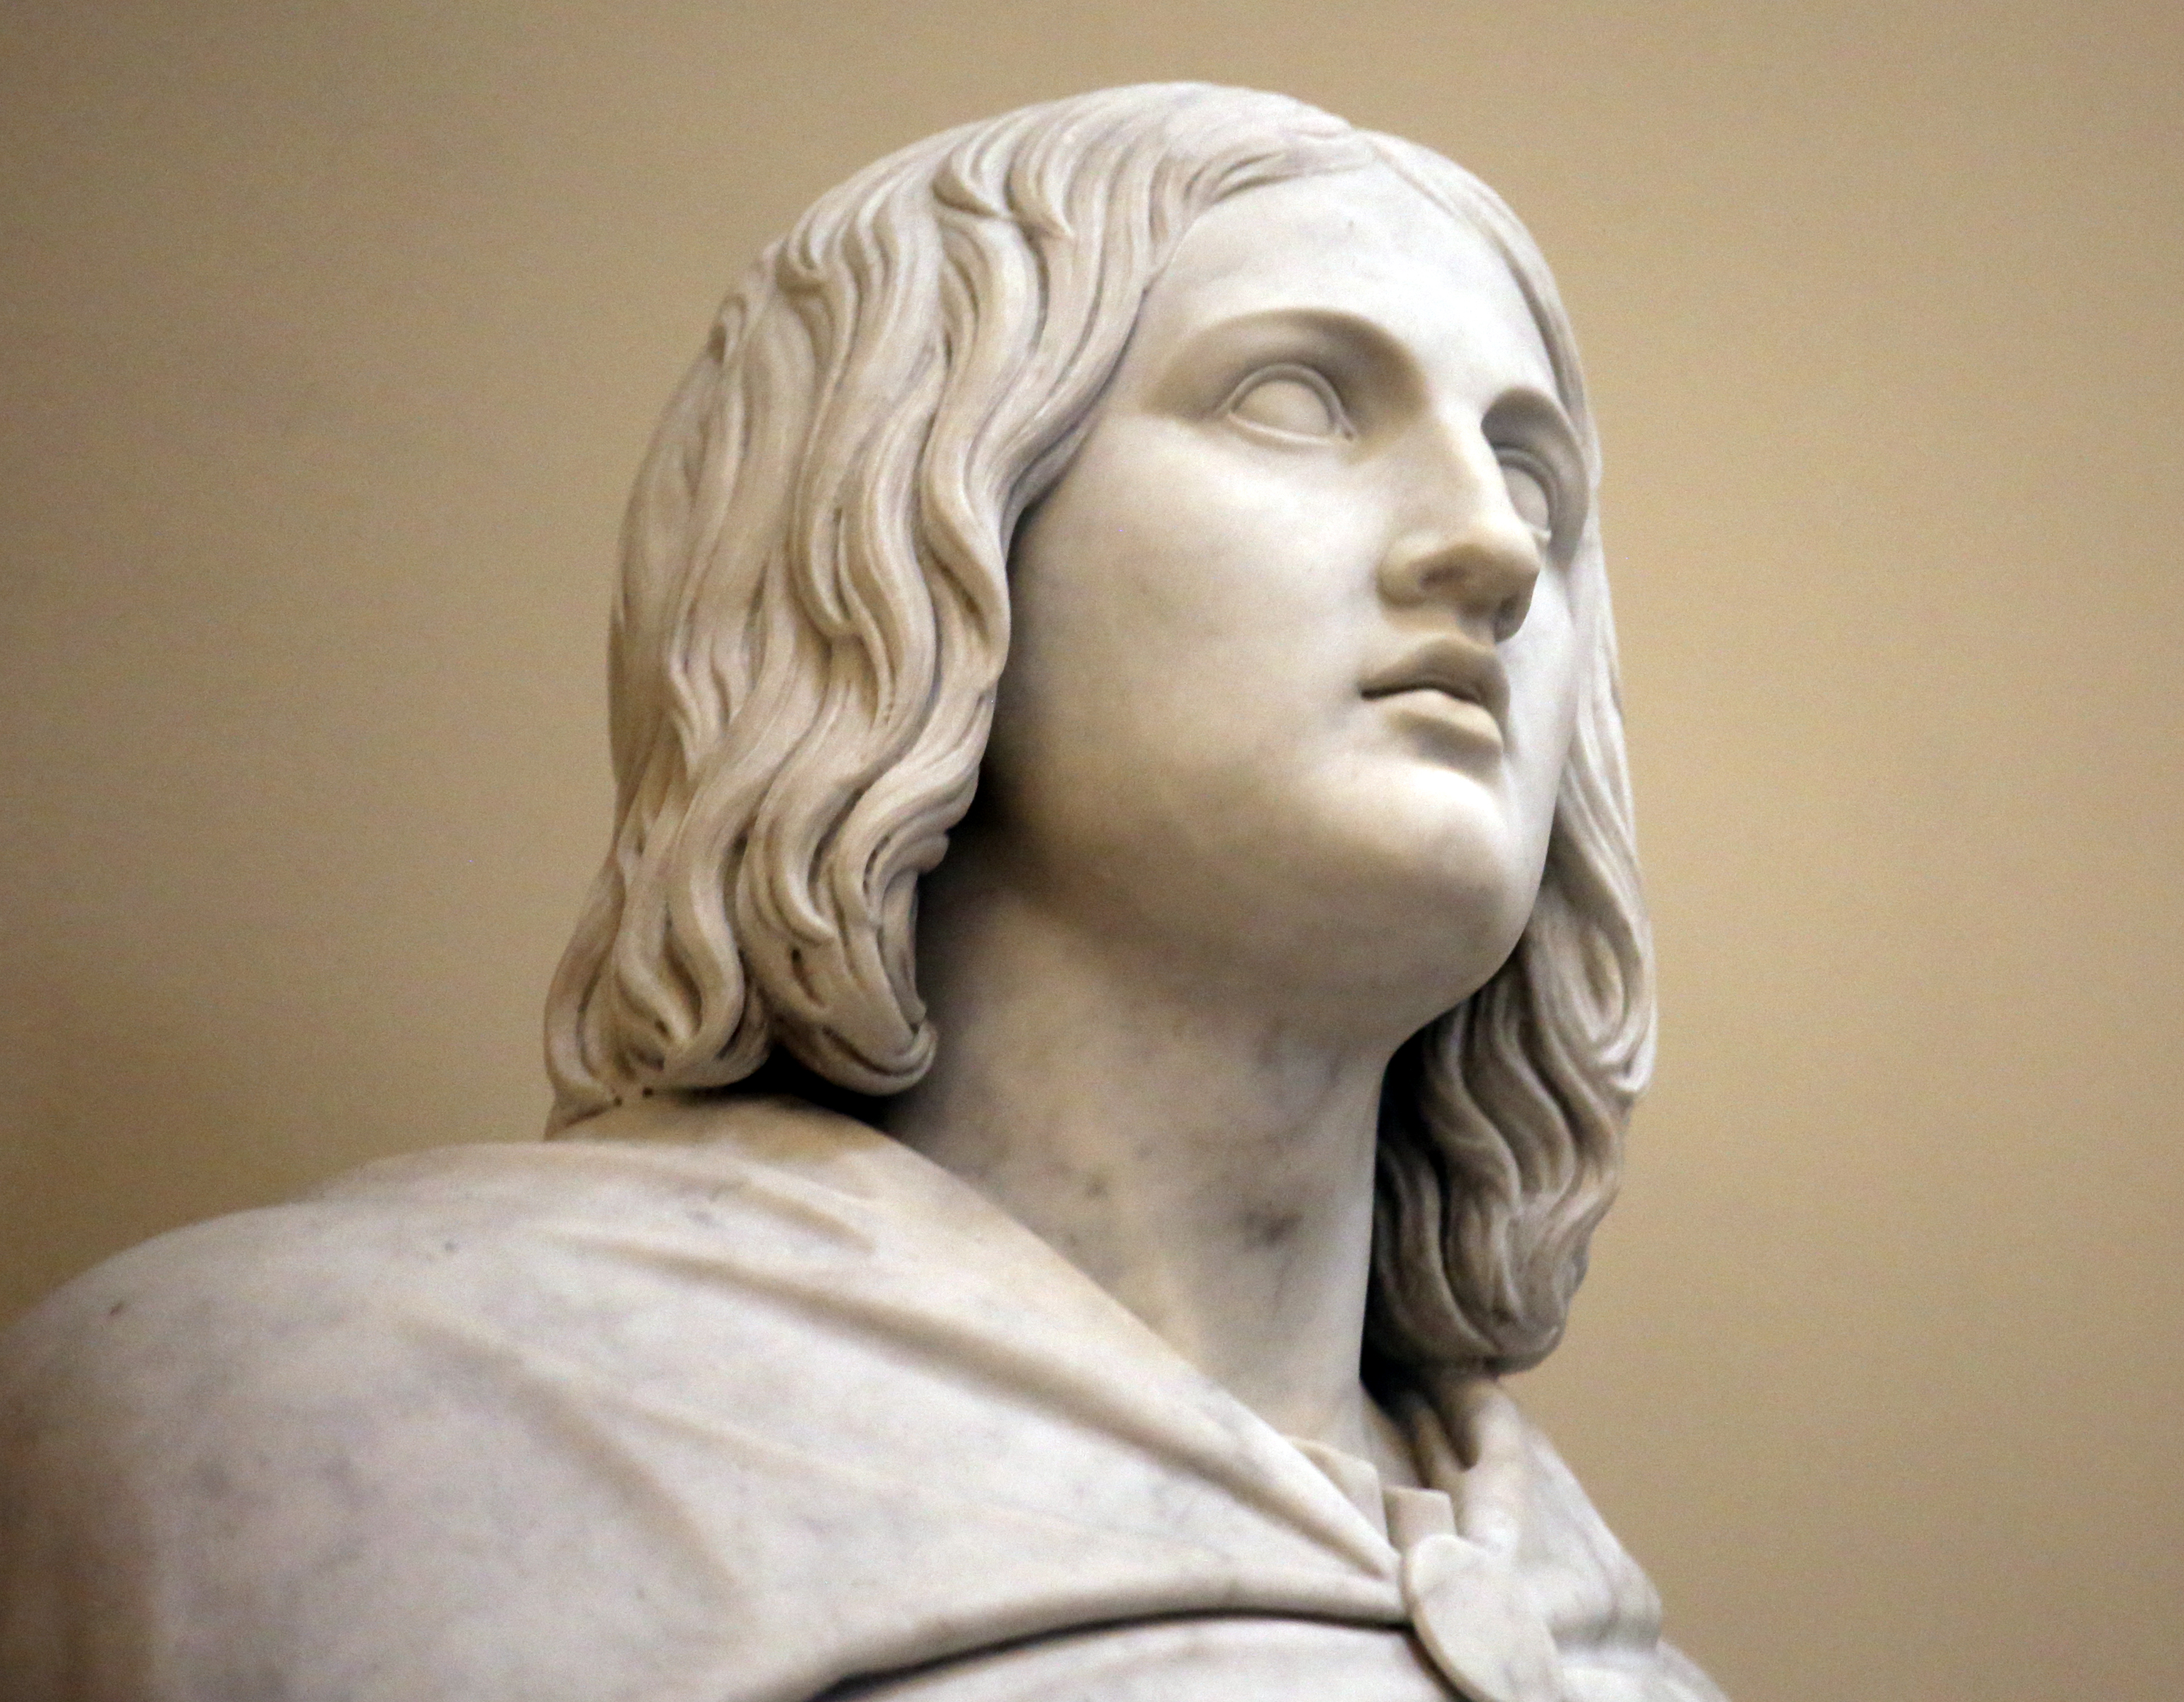 Bertel Thorvaldsen's statue of John, one of the 12 apostles, is shown without a beard at the Church of Our Lady in Copenhagen, Denmark, on Tuesday, Nov. 13, 2018. John is an example of a disciple from a previous dispensation that did not see the gospel succeed but had faith it would in this dispensation, as Elder Holland explained in a devotional at USU on Sept. 22, 2019.